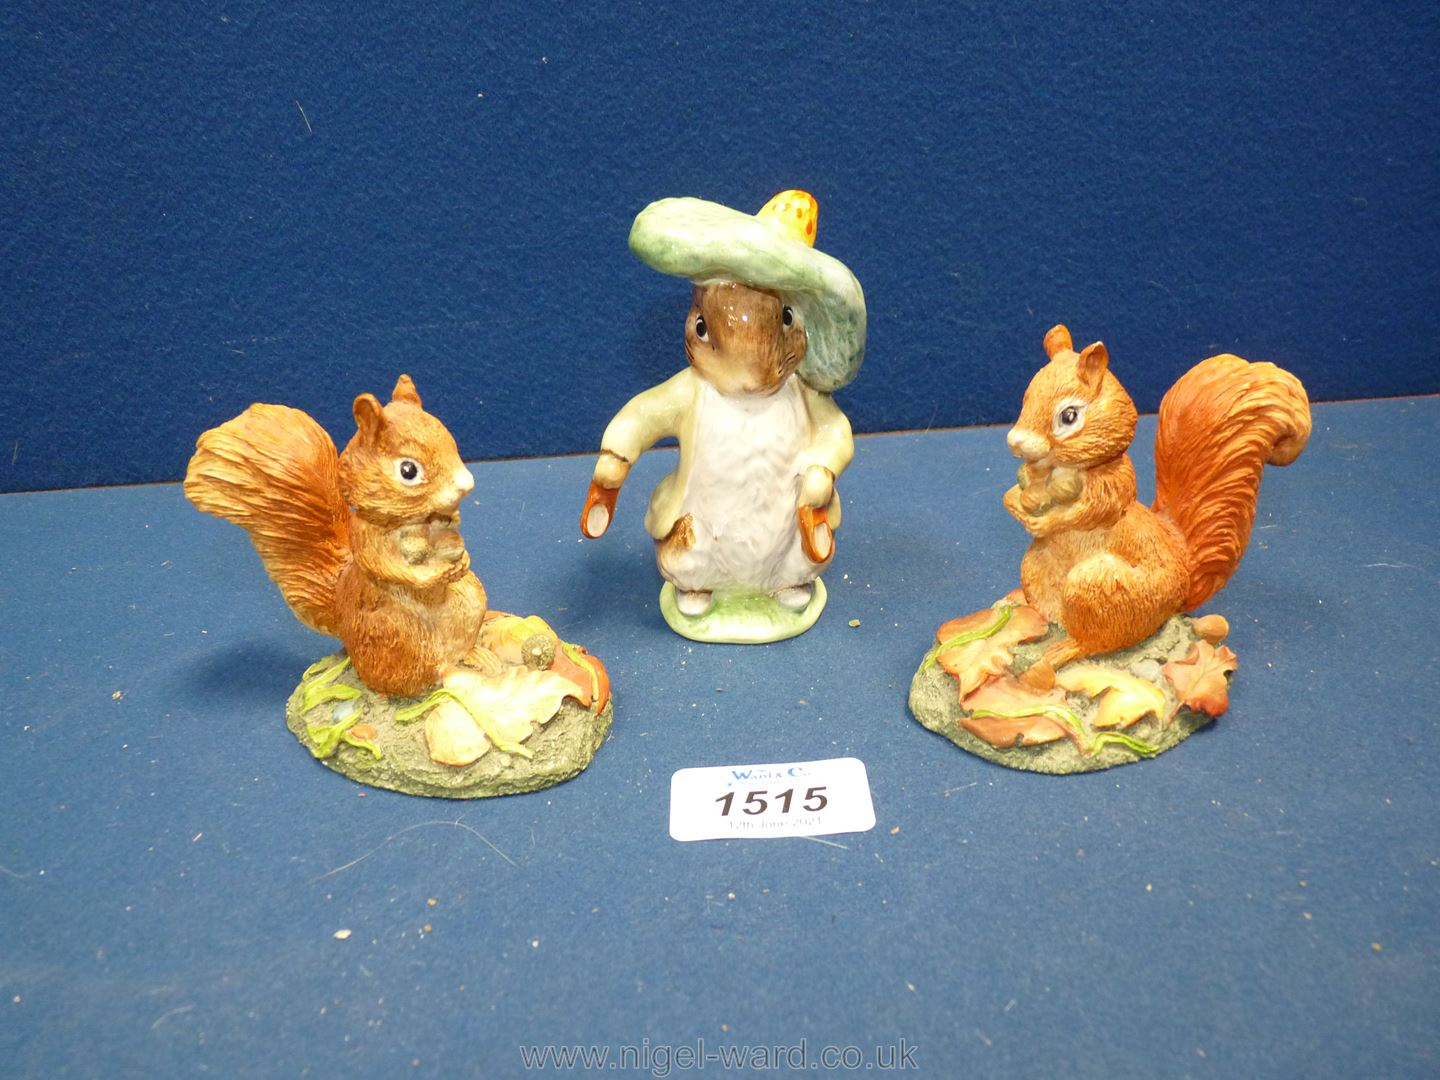 A Beswick 'Benjamin Bunny', (ear chipped) and two Beswick Red squirrels.